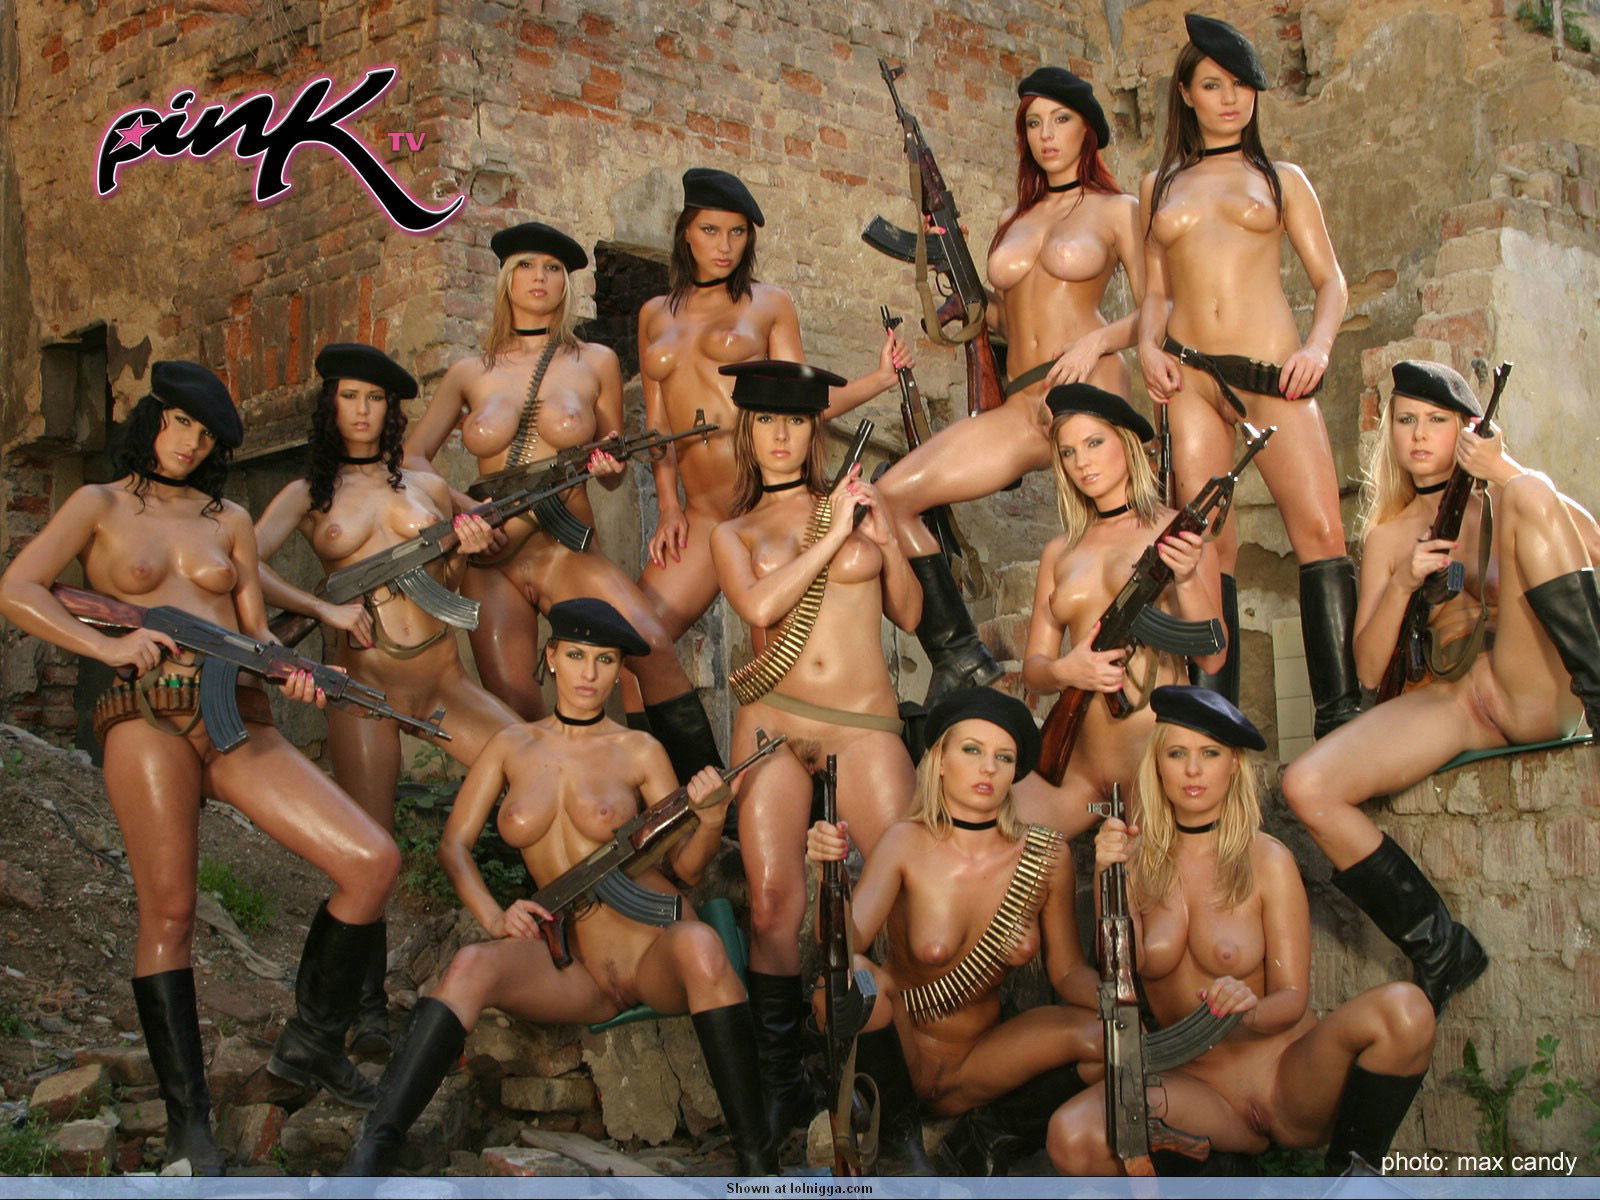 NSFW – Lots Of Girls. Lots Of Guns. | MyConfinedSpace NSFW